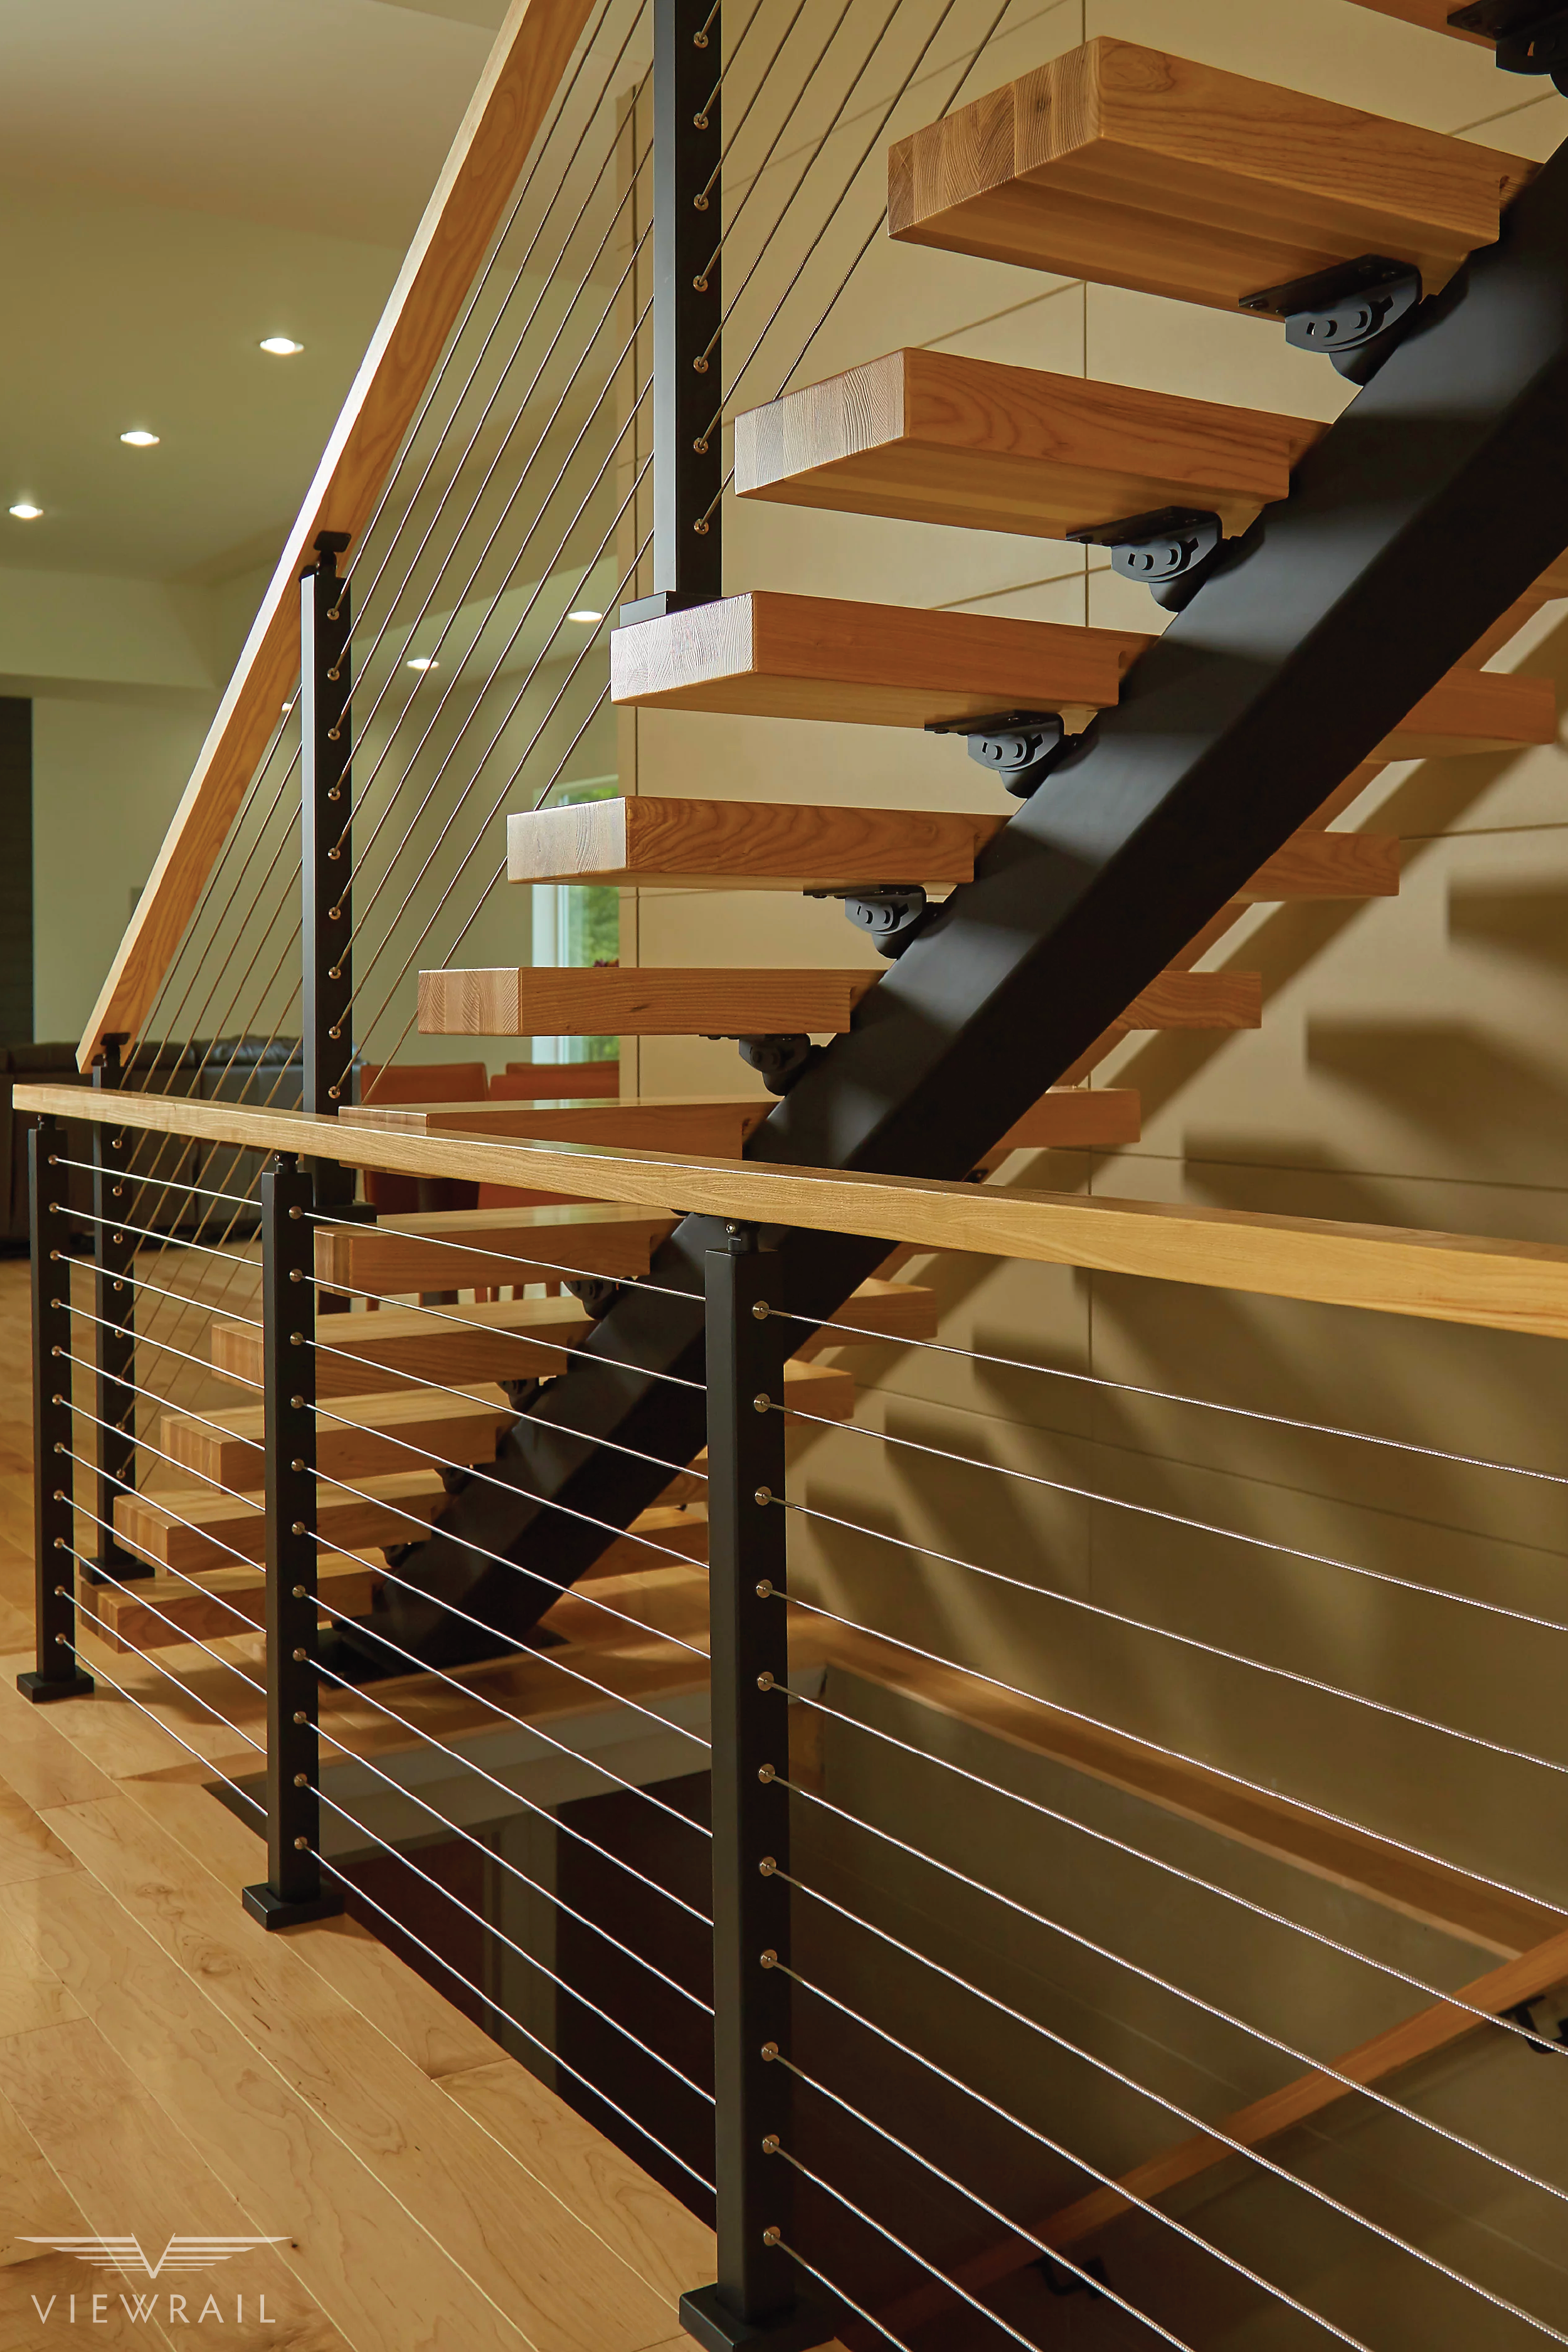 Straight Staircases Single Stringer Metal Staircases Viewrail